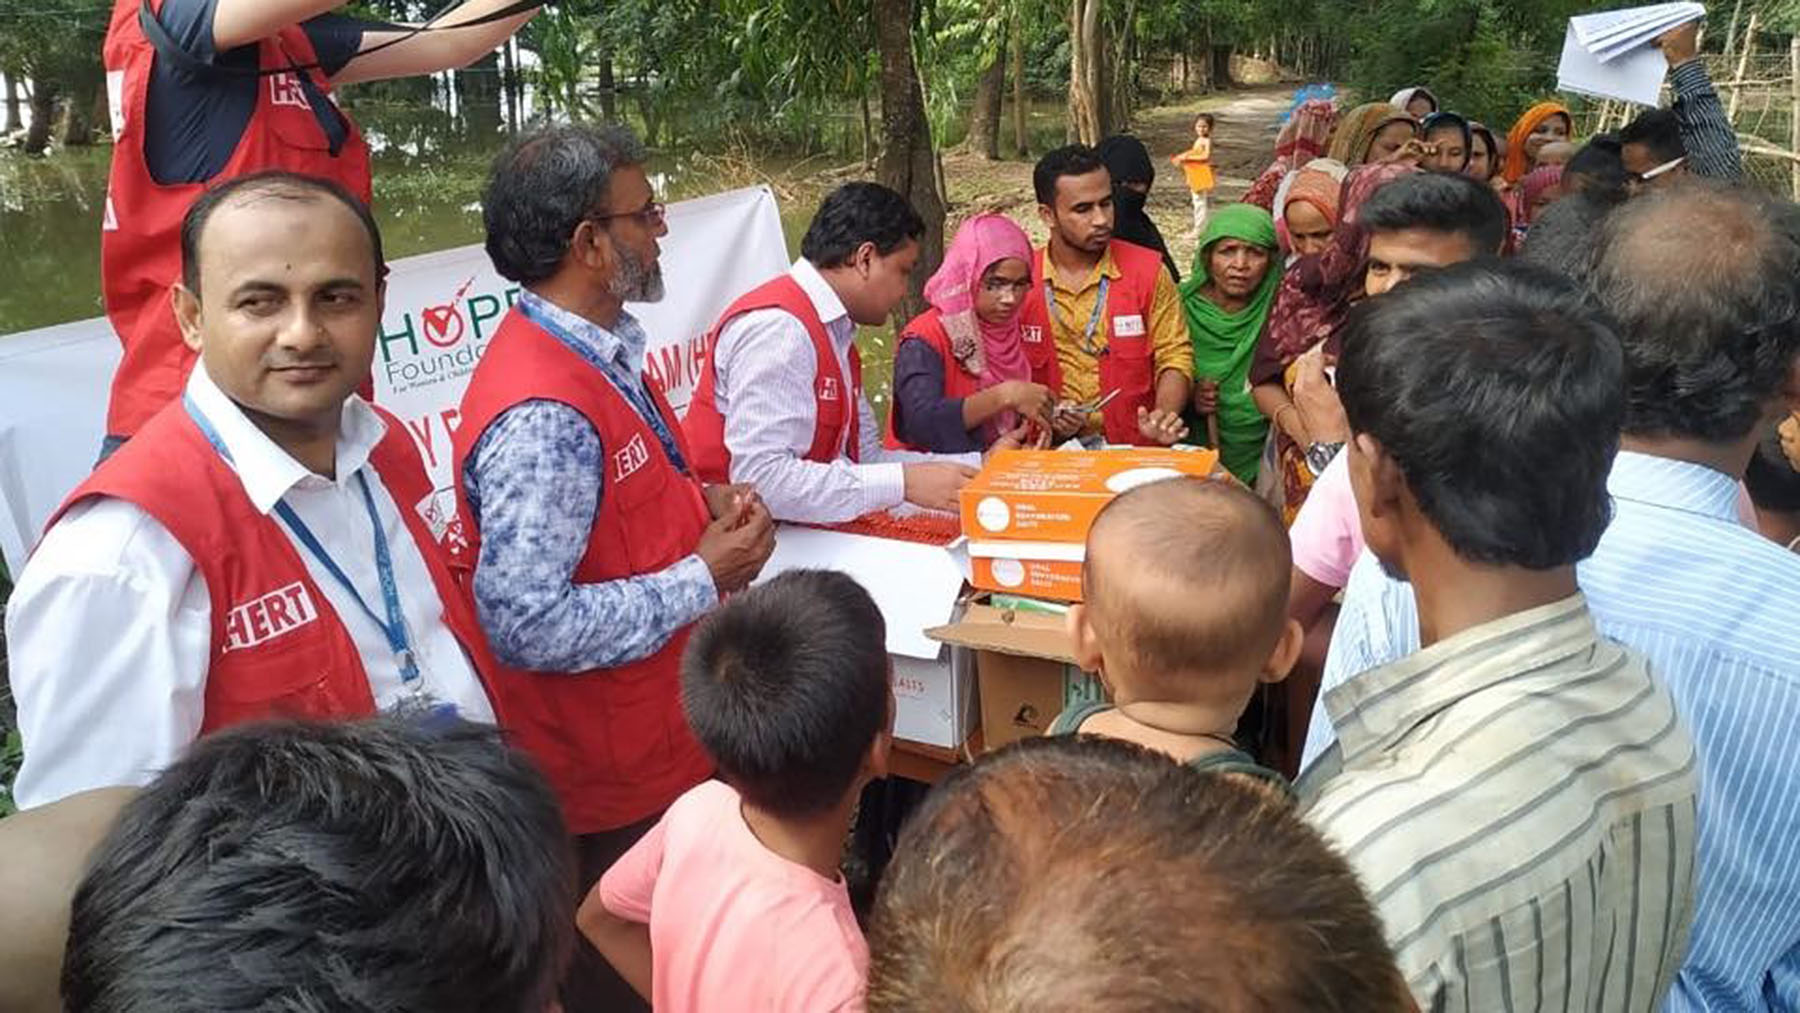 Emergency response teams from HOPE Hospital in Cox's Bazar, Bangladesh, conduct outreach to Rohingya patients living in camps nearby. (Photo courtesy of HOPE Foundation for Women and Children)